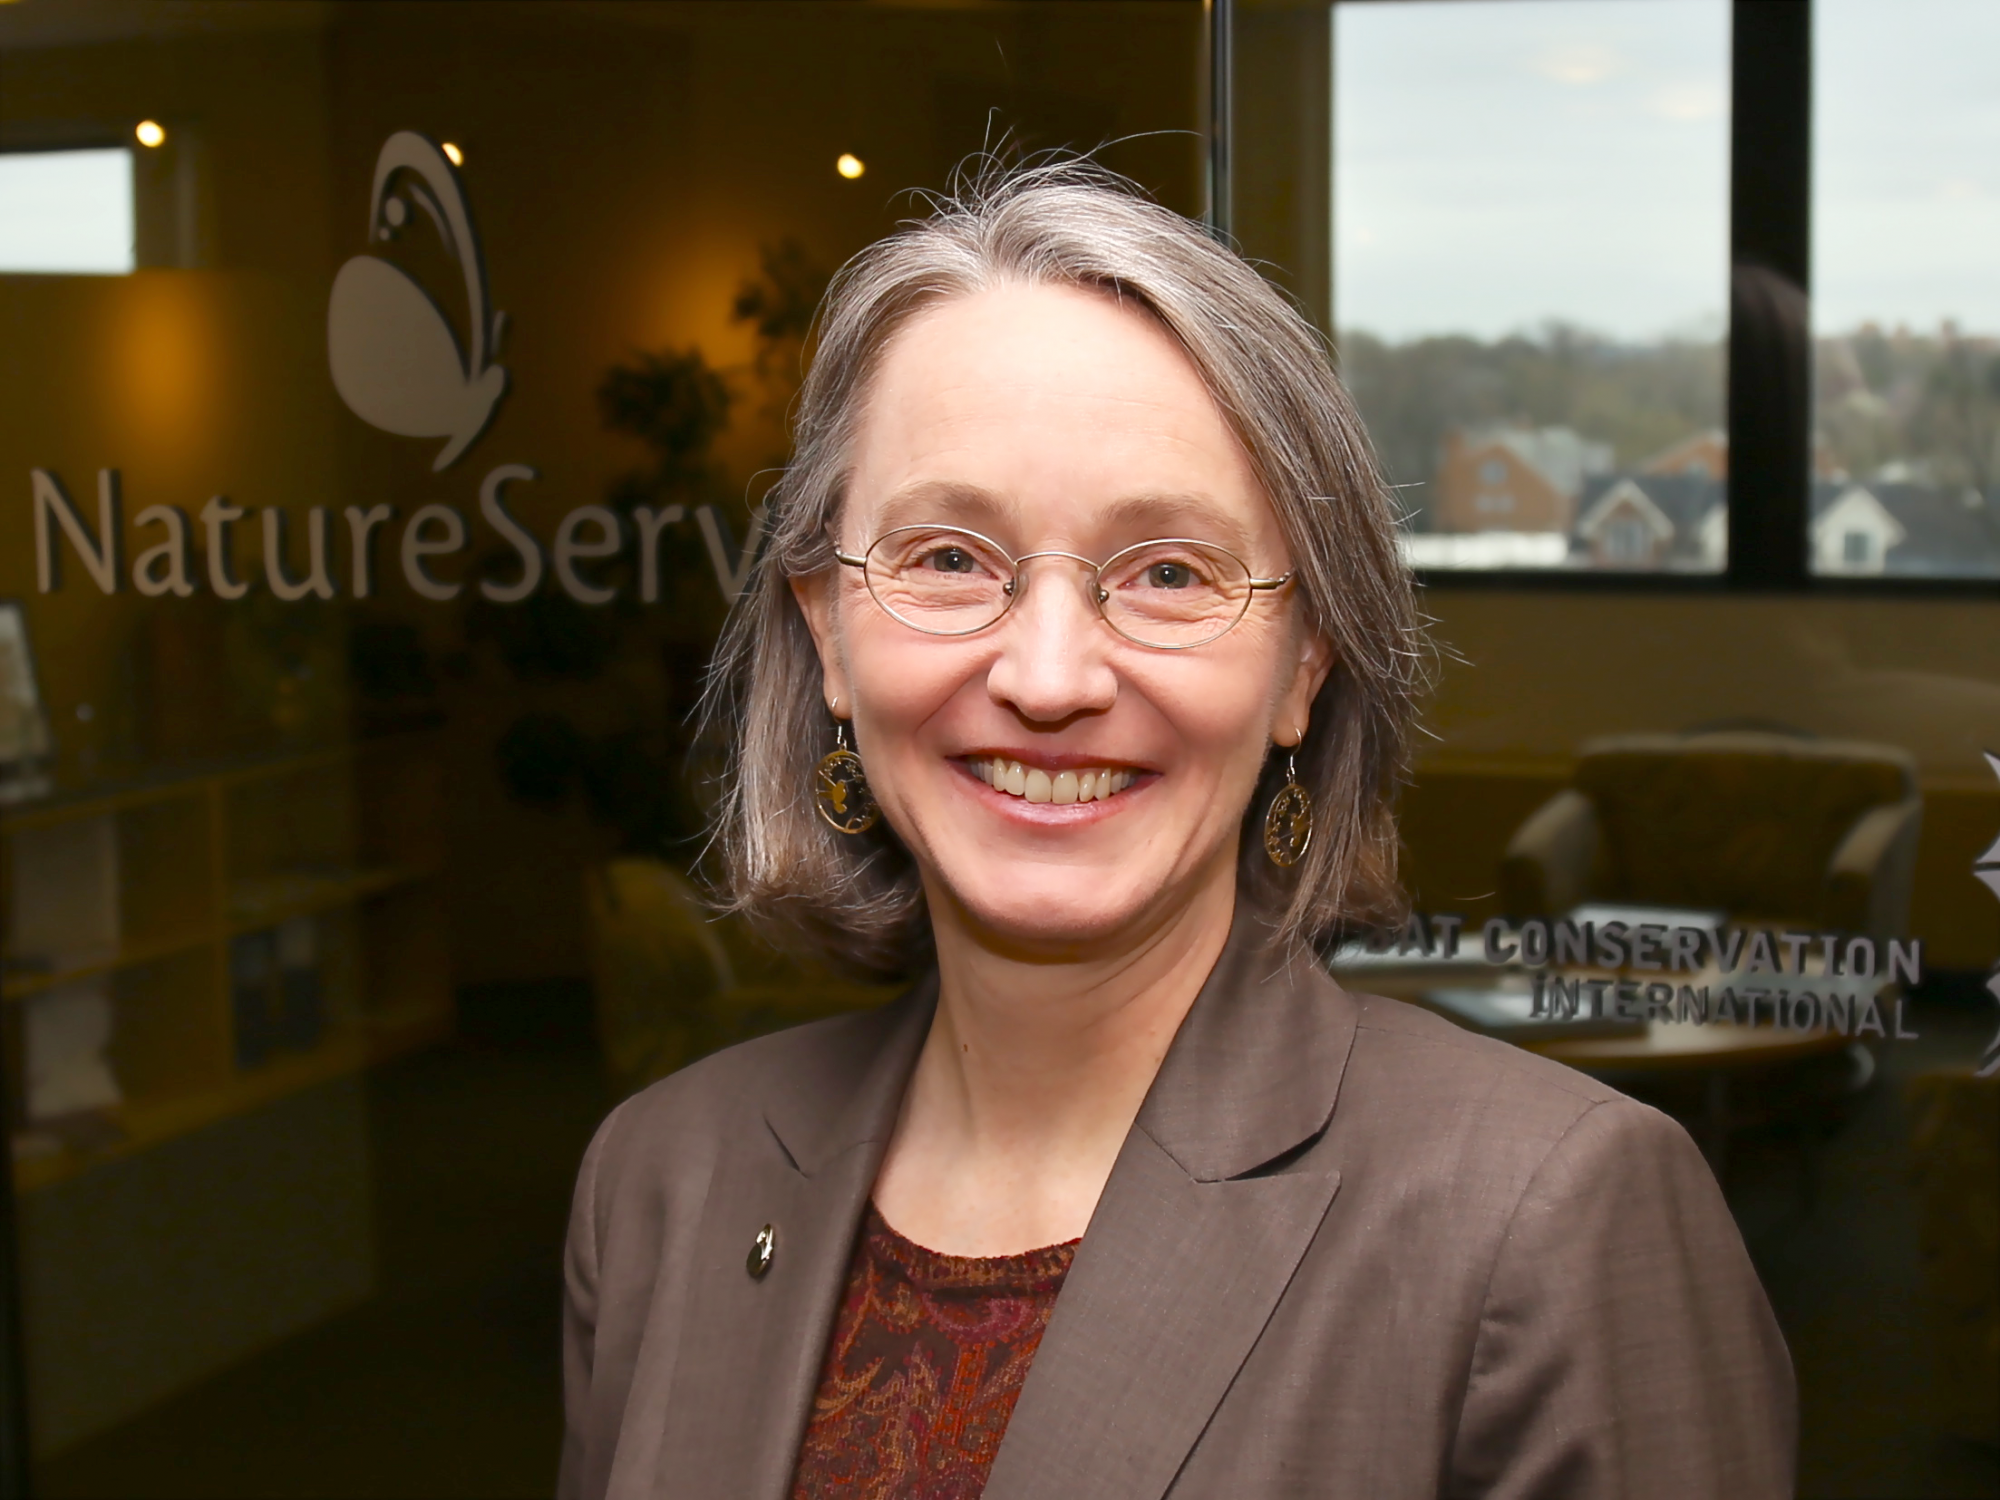 NatureServe President & CEO Mary Klein